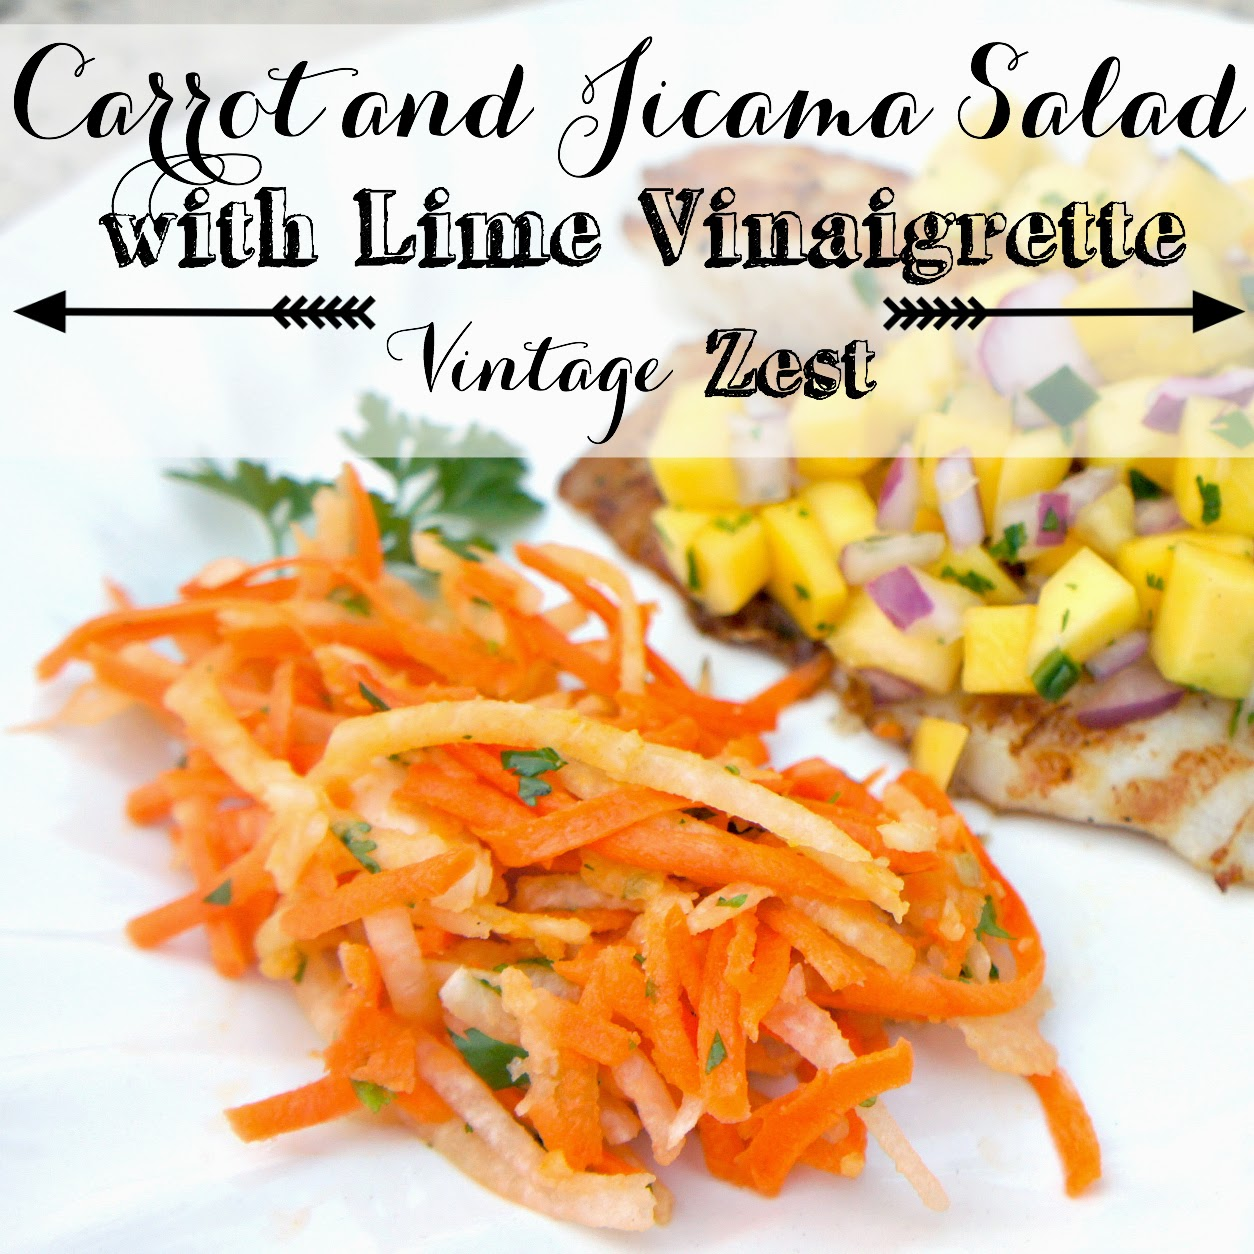 Carrot and Jicama Salad with Lime Vinaigrette with Diane's Vintage Zest!